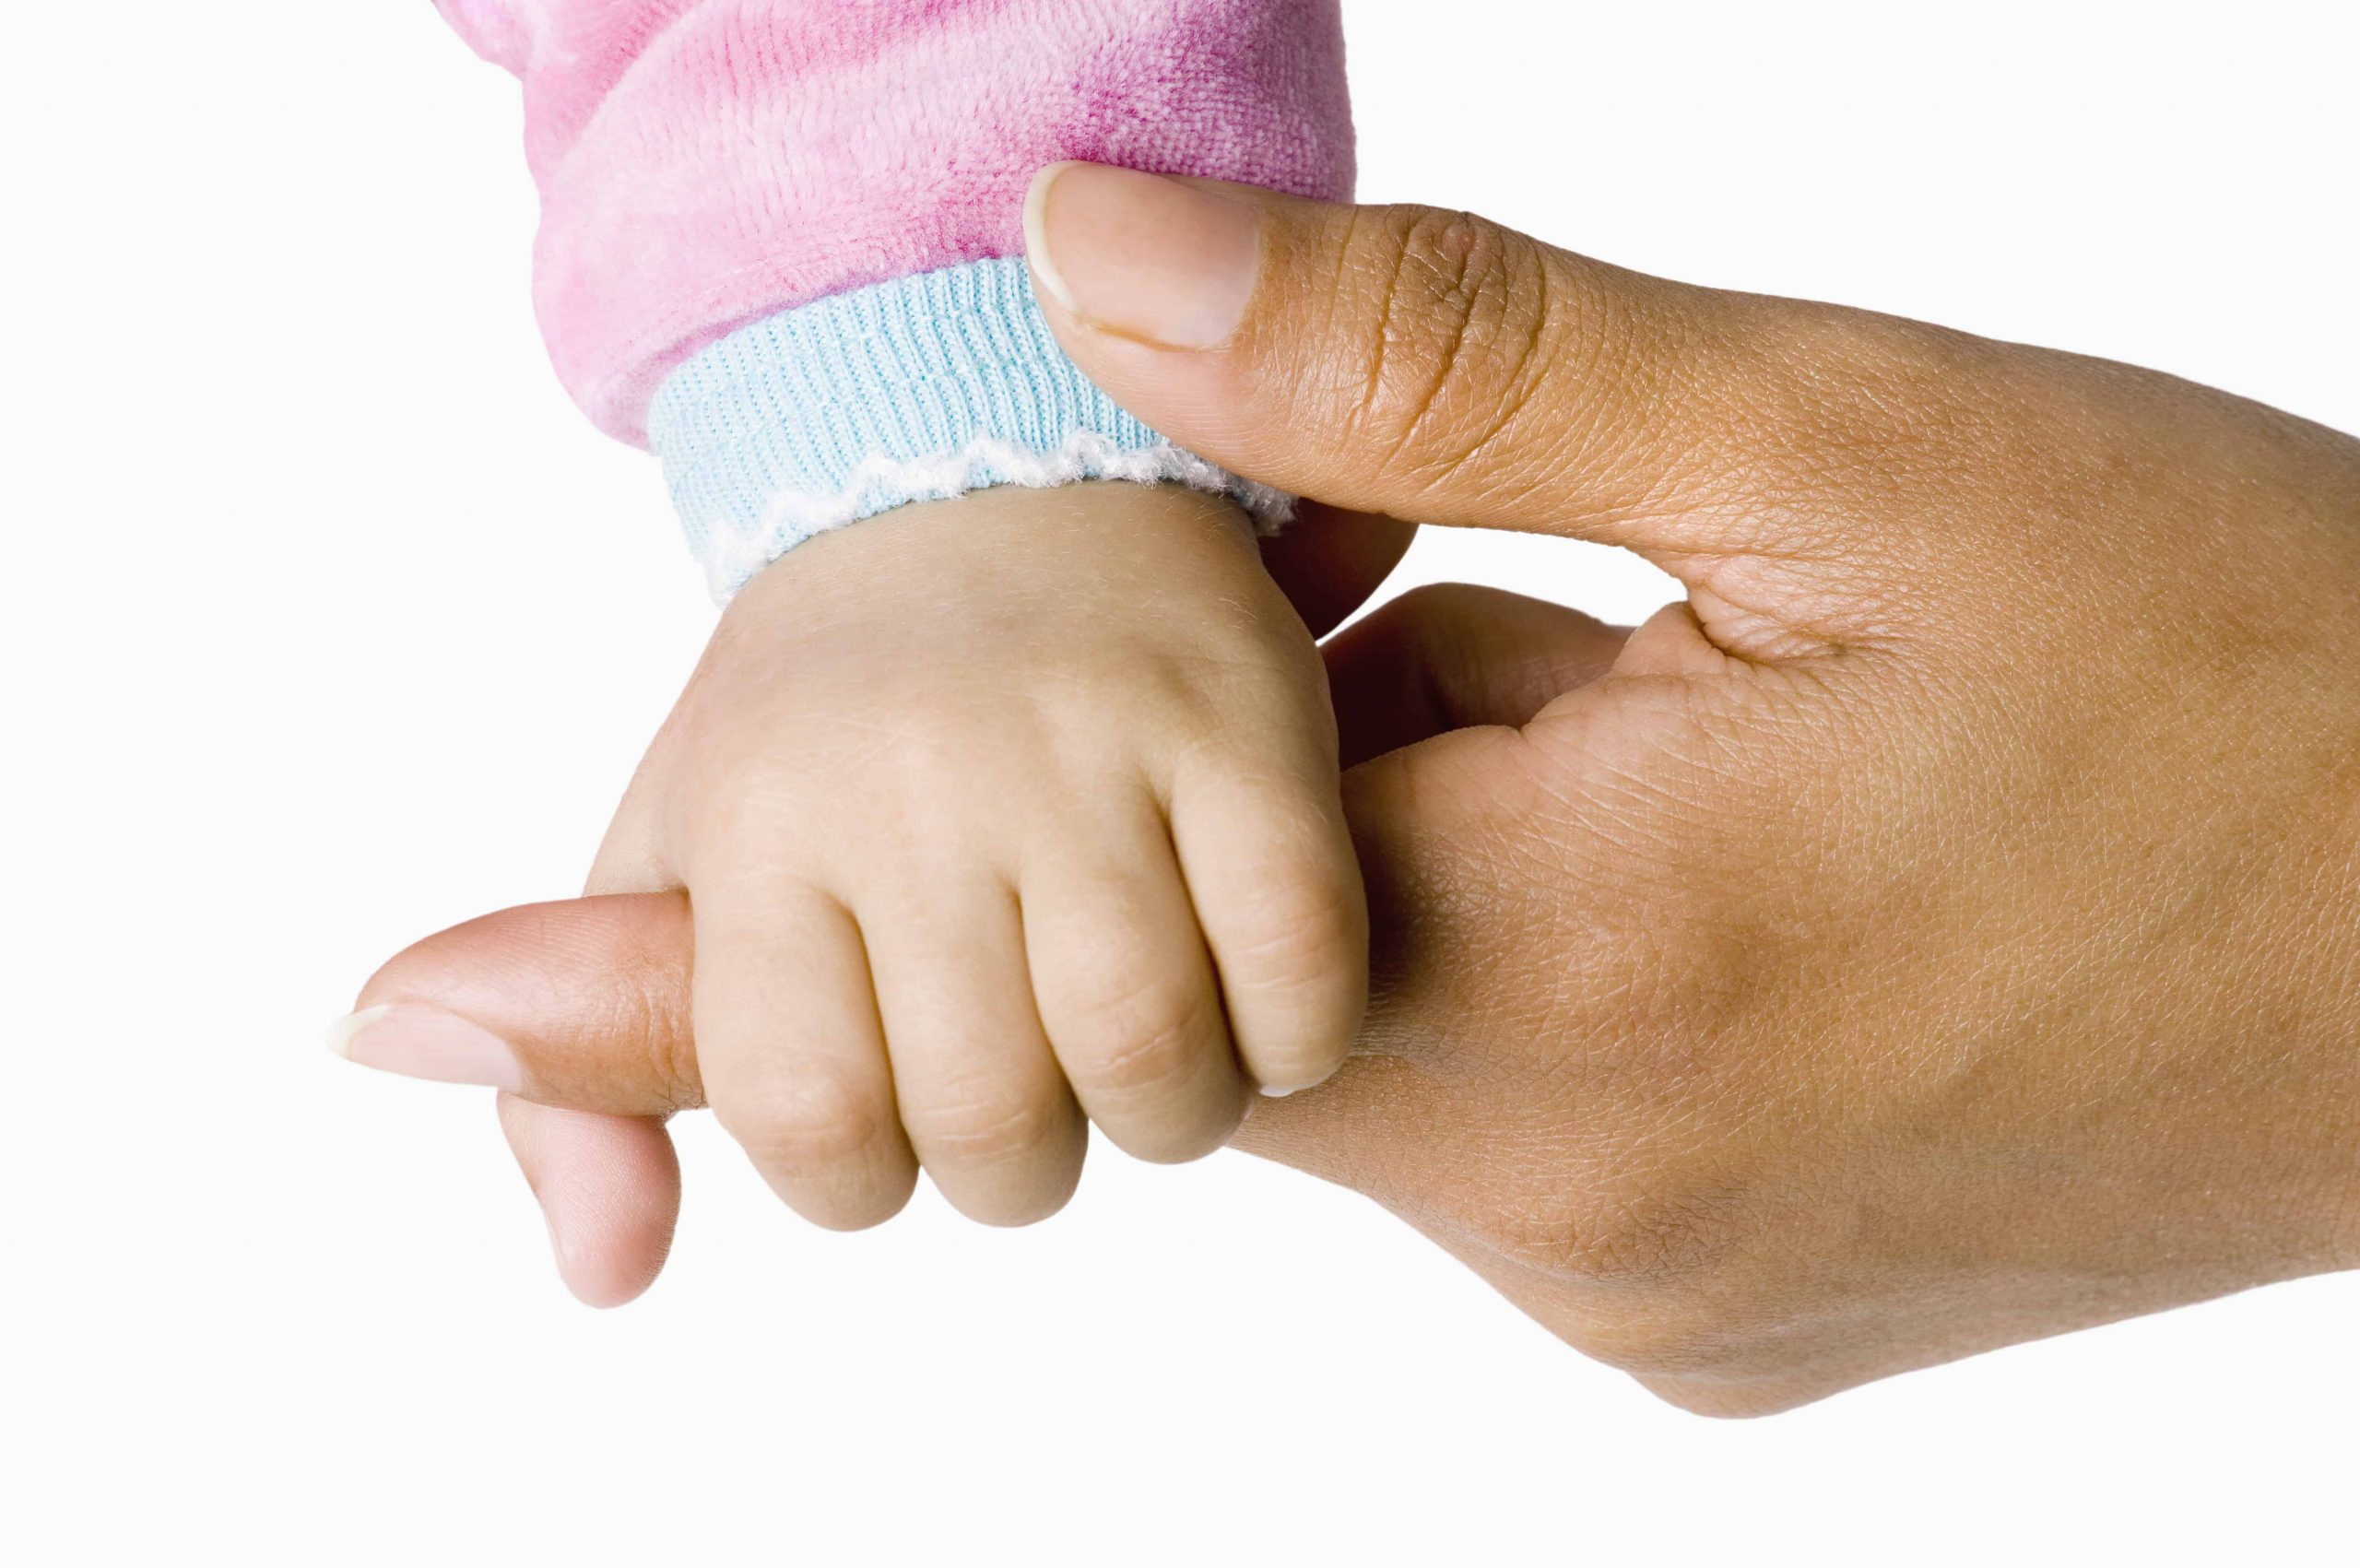 Mother holding her healthy daughter's hand after a positive and calmer birth